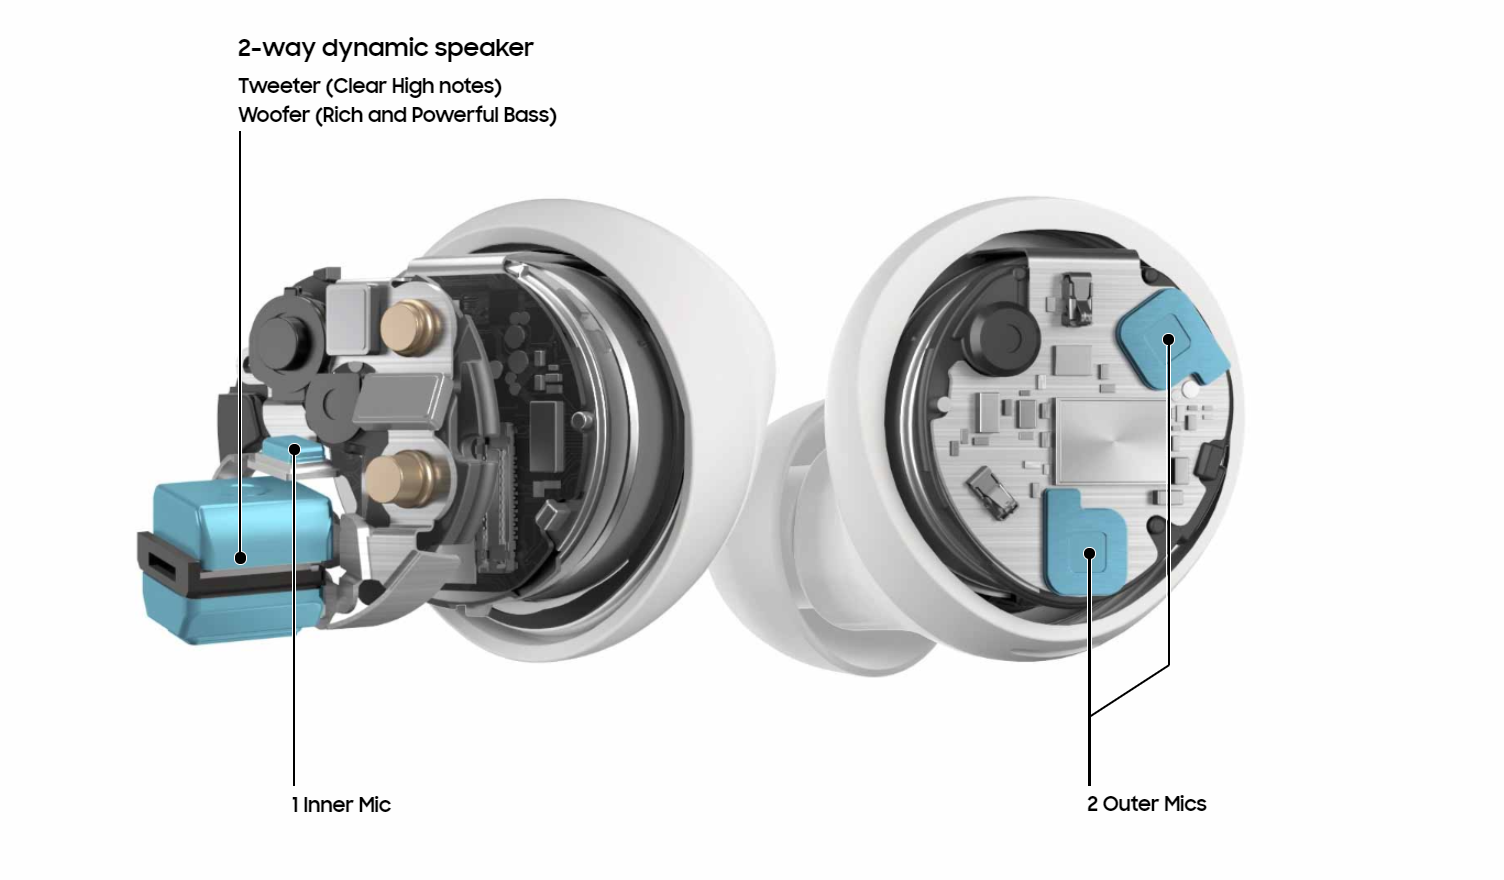 Samsung Galaxy Buds Plus Internal Structure